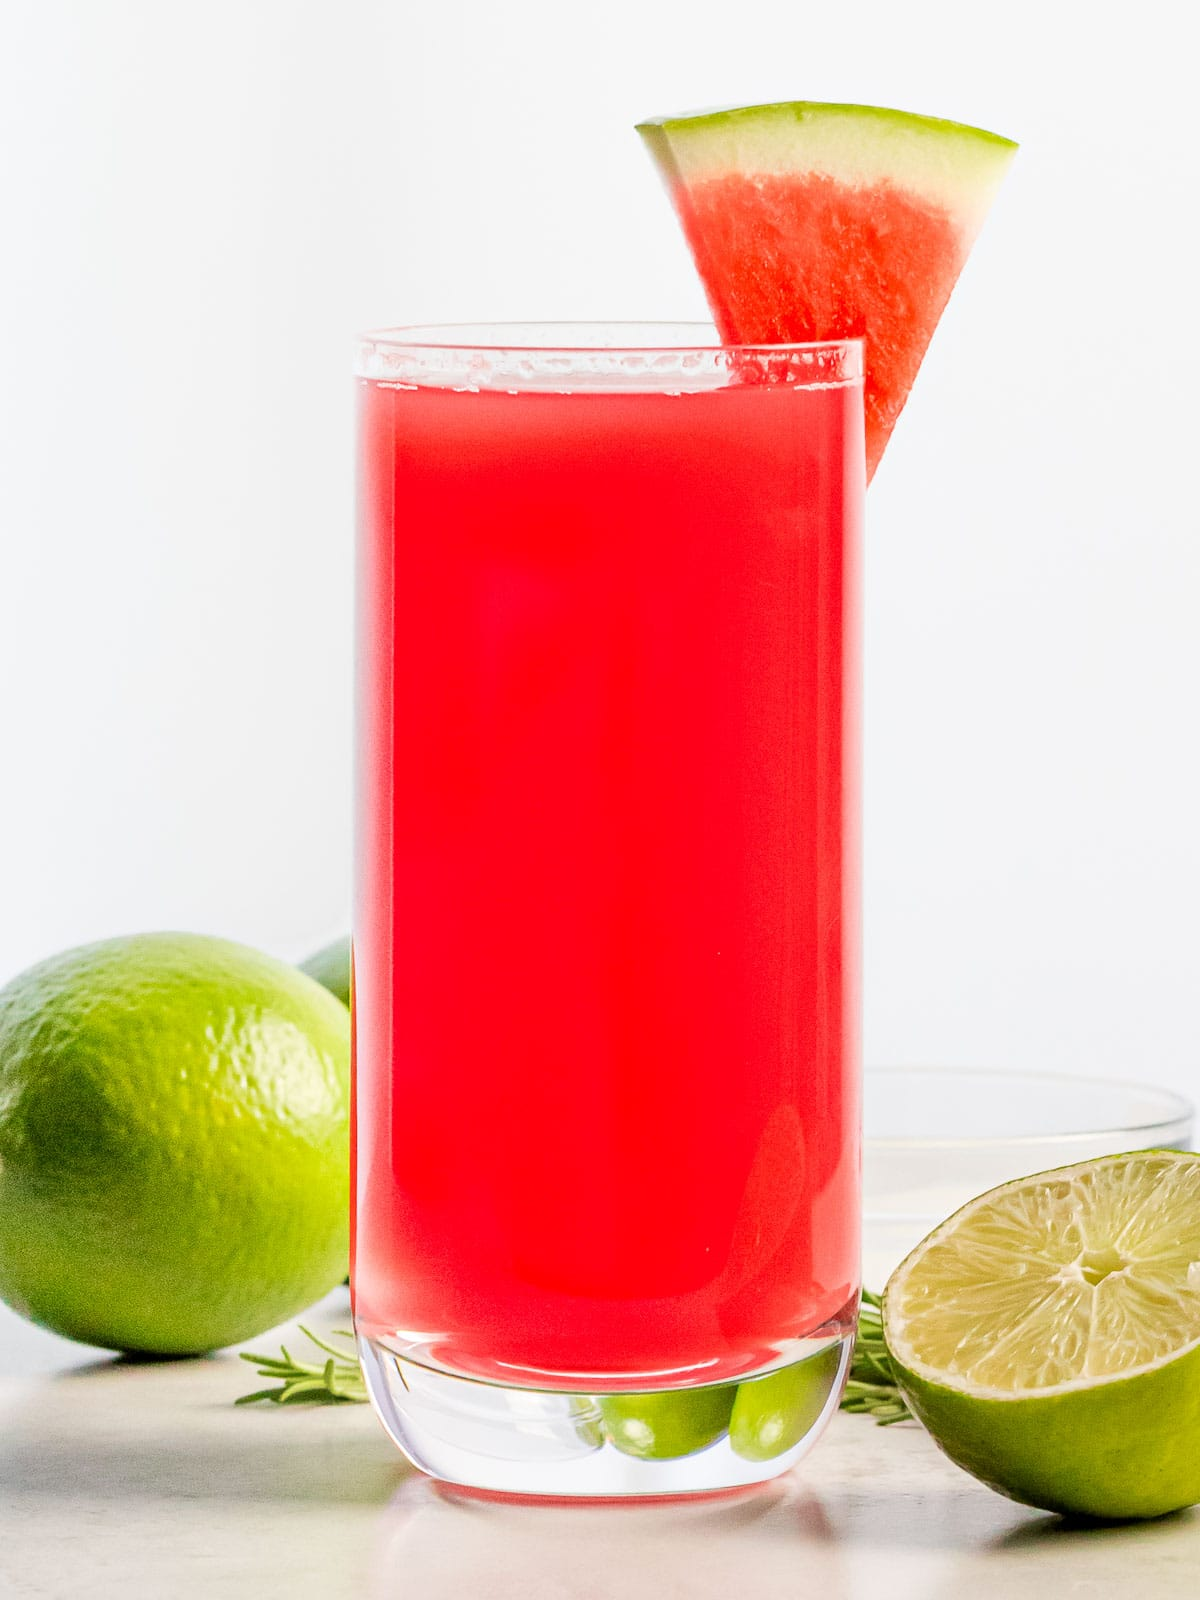 glass full of watermelon agua fresca with a slice of watermelon next to lime